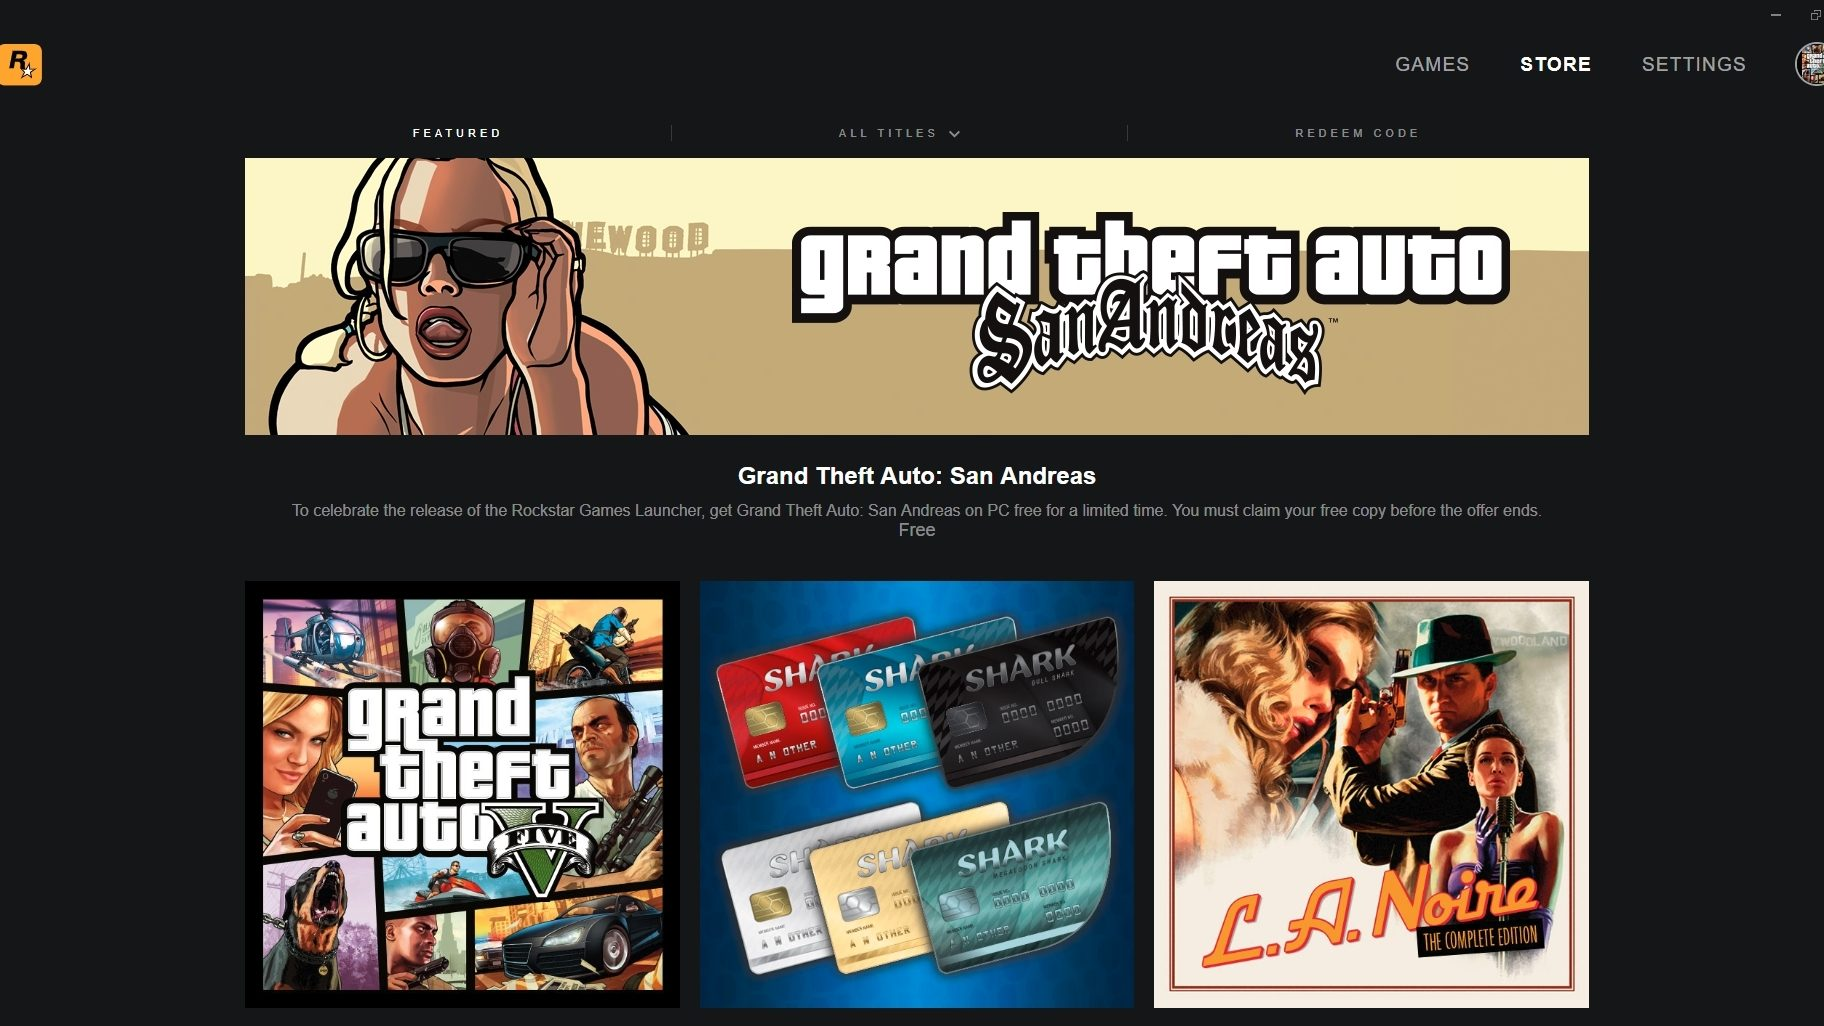 Rockstar has released its own game launcher